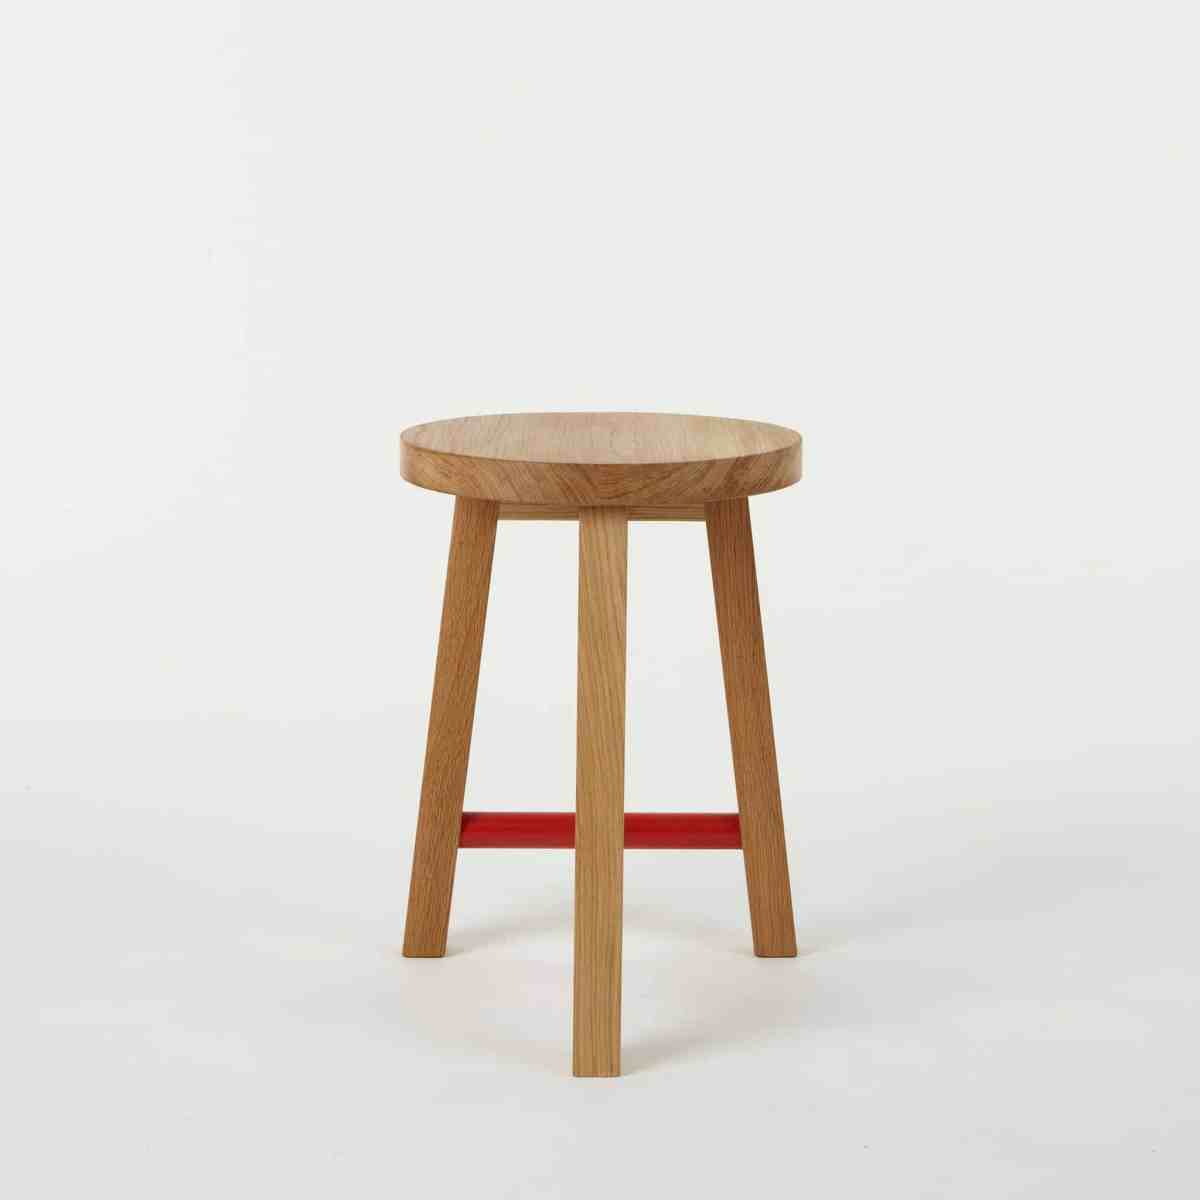 series-two-stool-round-ash-another-country-009